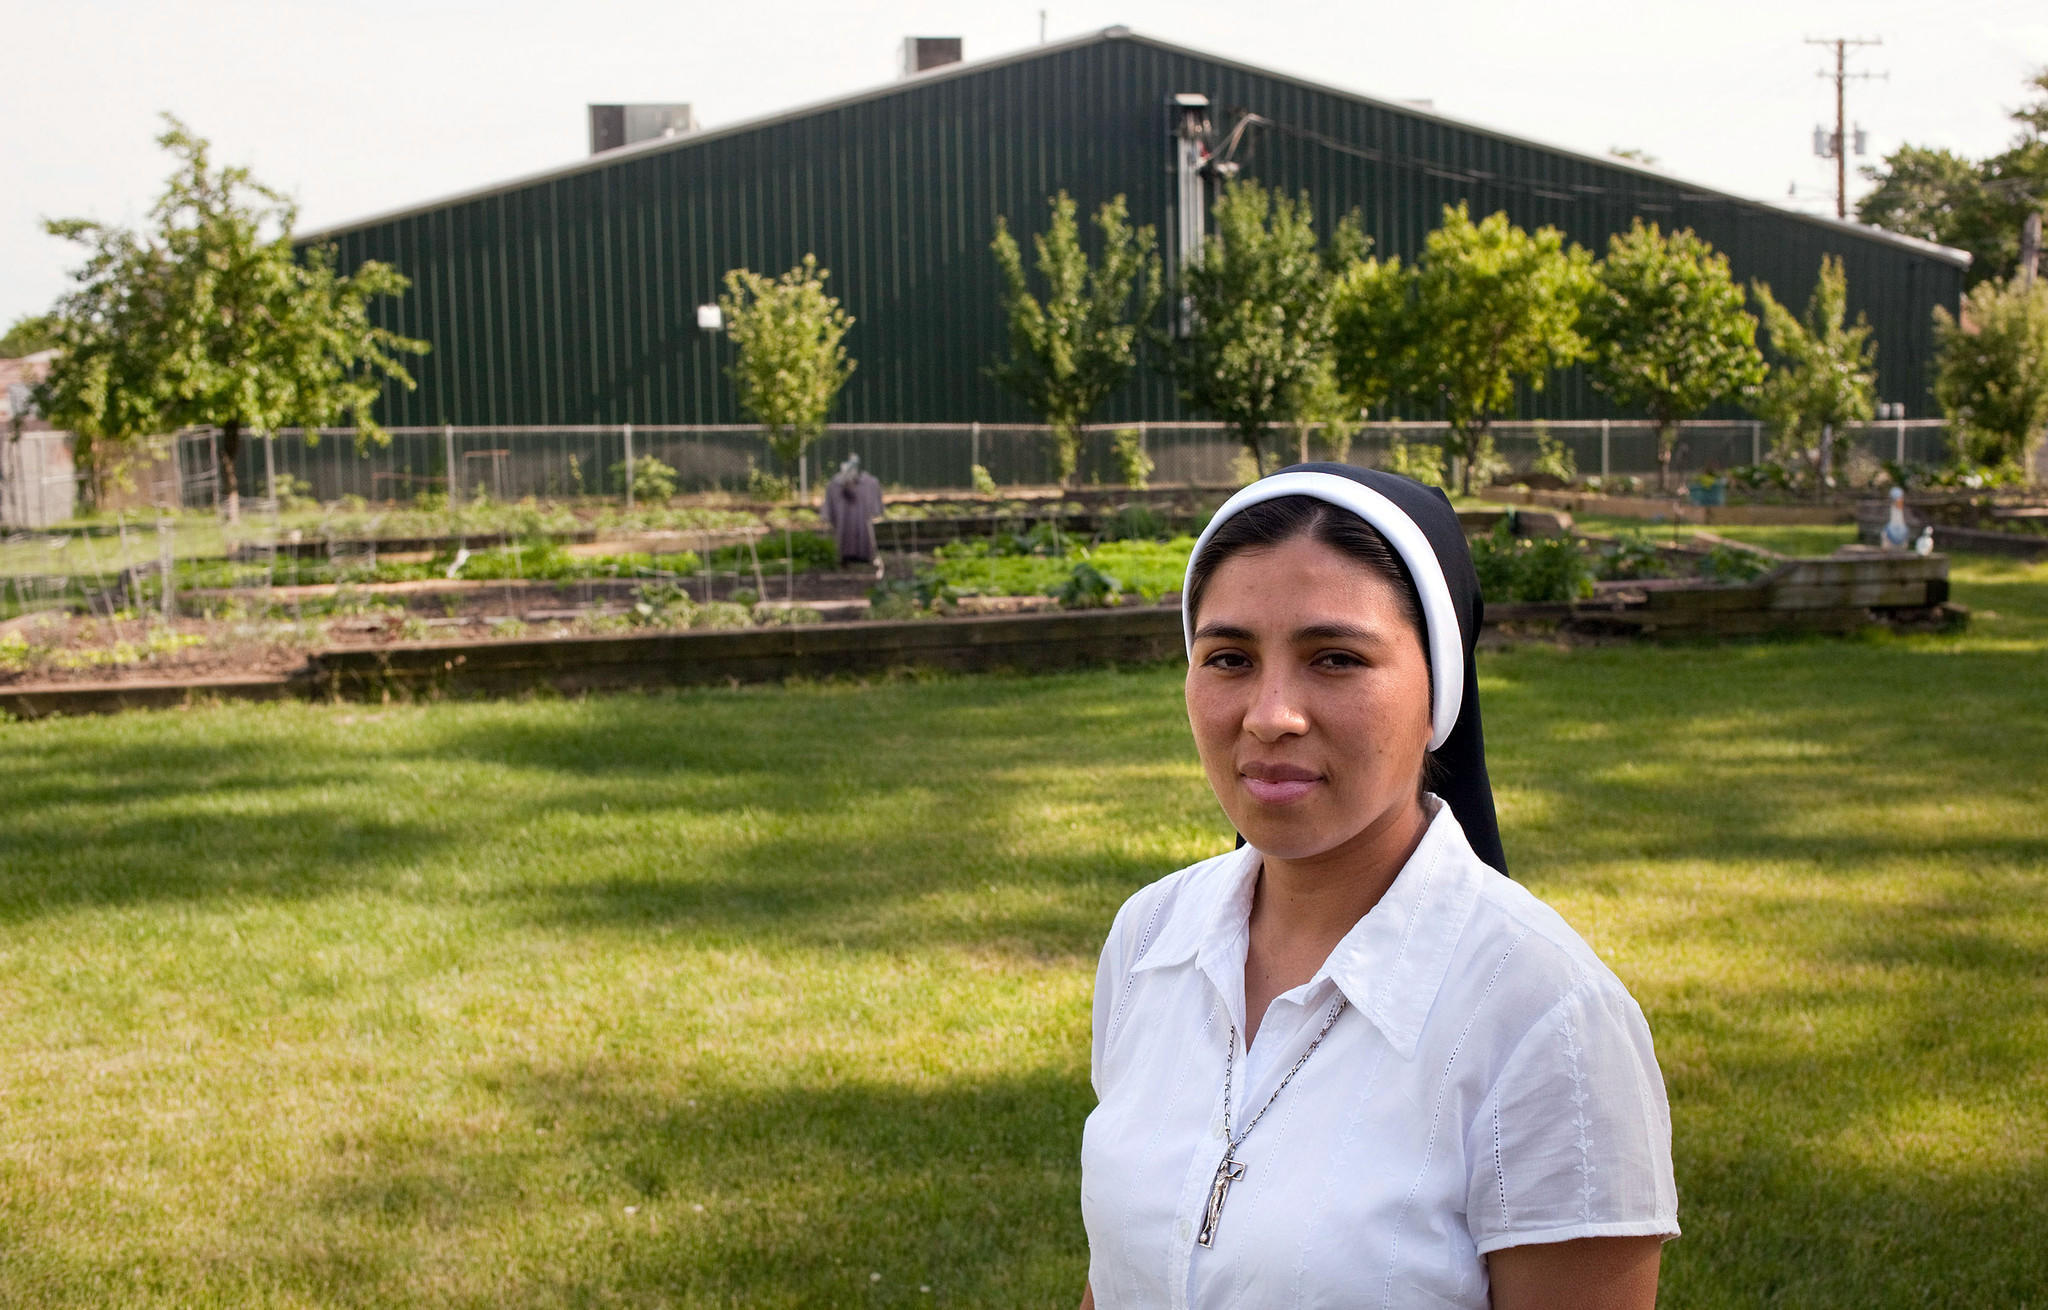 Sister Almarosa, of Missionary Sisters of St. Charles Borromeo, stands in the convent's garden, with Club Allure in the background. The group of nuns is suing the strip club.